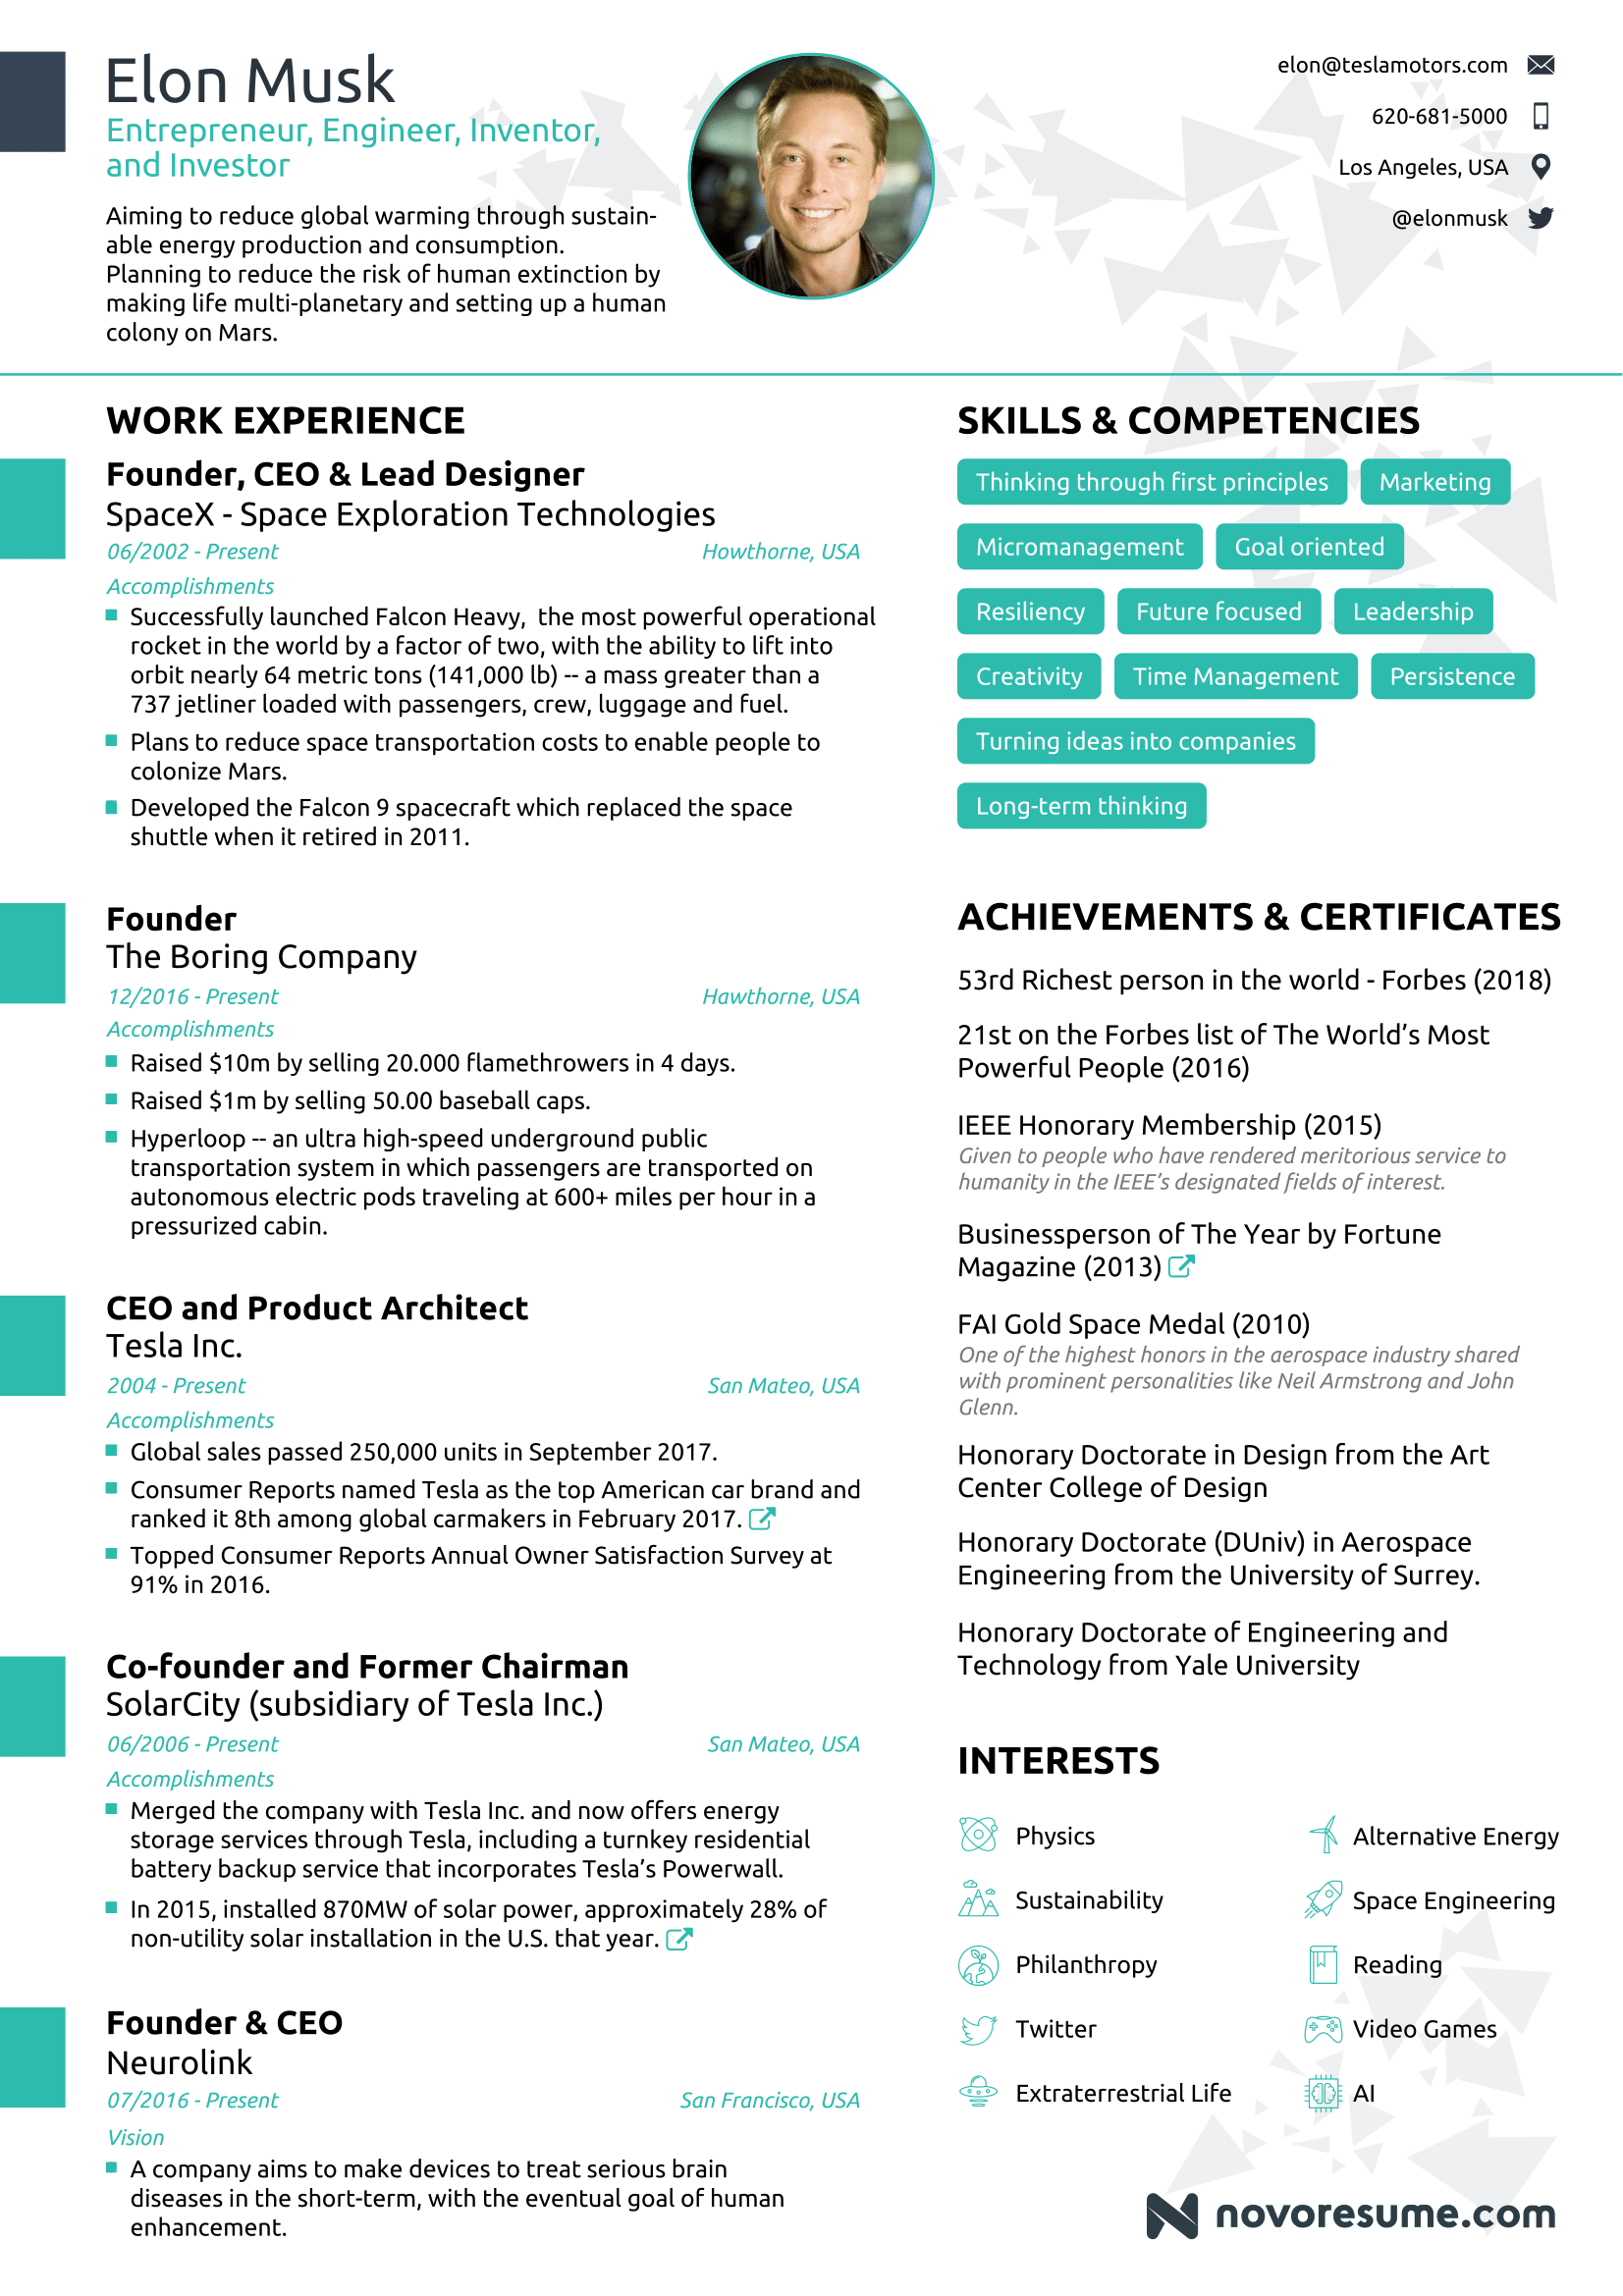 The Resume Of Elon Musk By Novoresume